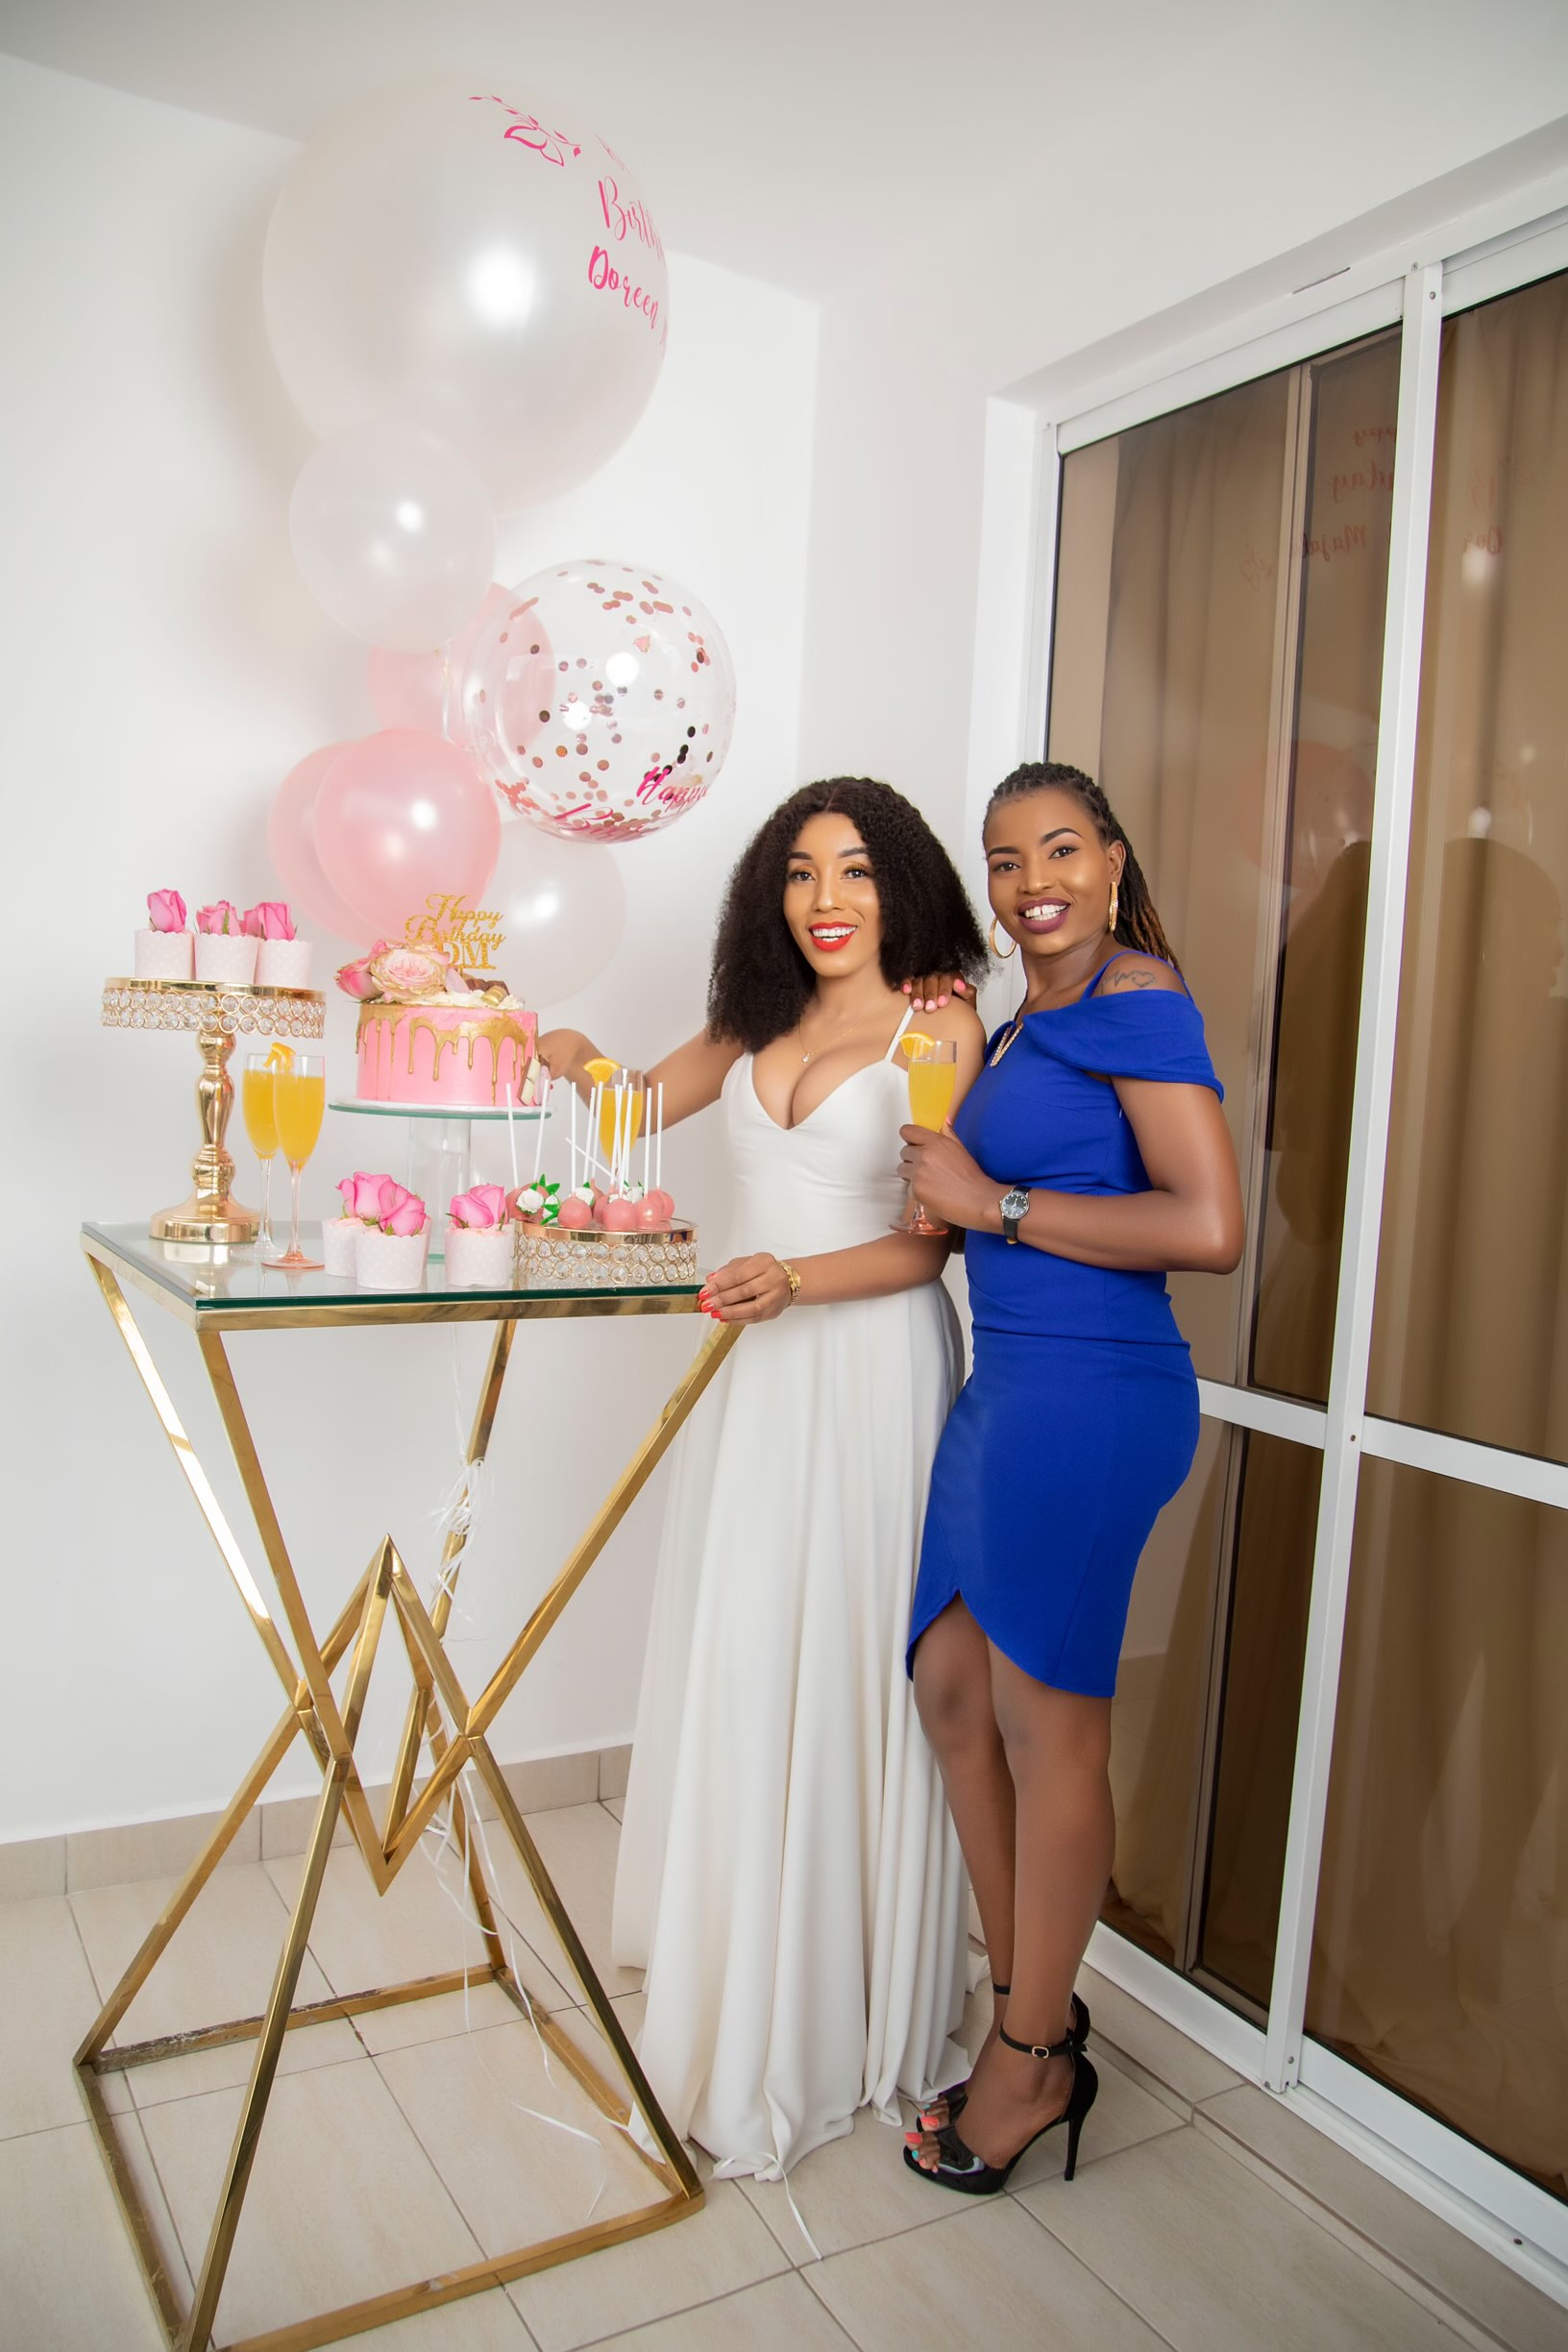 Doreen Majala takes over the internet as she celebrates 30th Birthday with exquisite photos